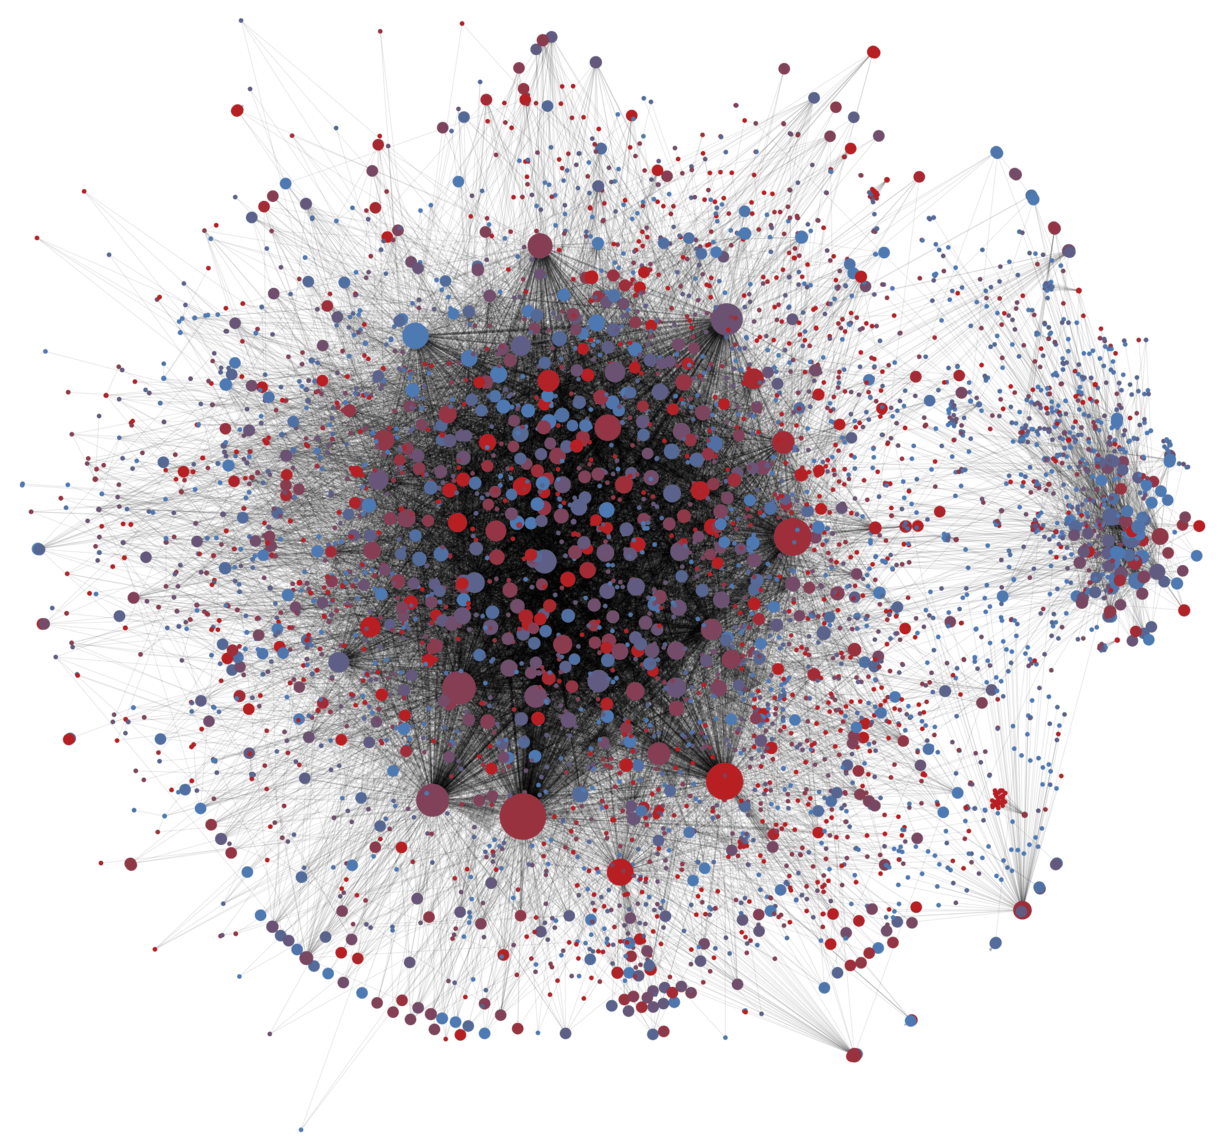 In this visualization of the spread of the #SB277 hashtag about a California vaccination law, dots are Twitter accounts posting using that hashtag, and lines between them show retweeting of hashtagged posts. Larger dots are accounts that are retweeted more. Red dots are likely bots; blue ones are likely humans.